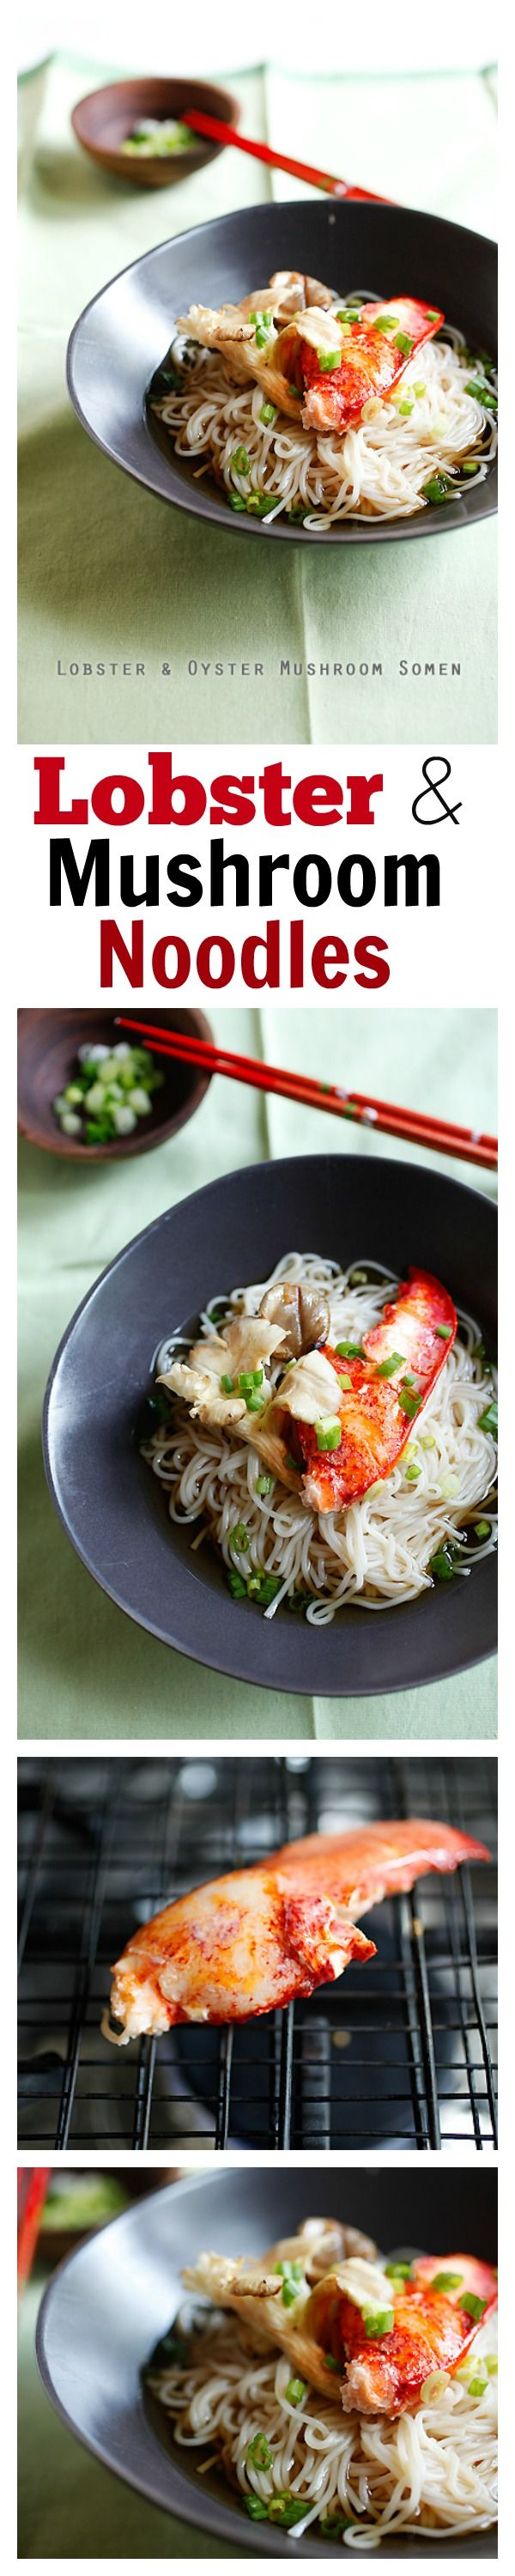 Lobster and Mushroom Noodles - easy & delicious Japanese noodles with mushroom and lobster. SLURP!!! | rasamalaysia.com